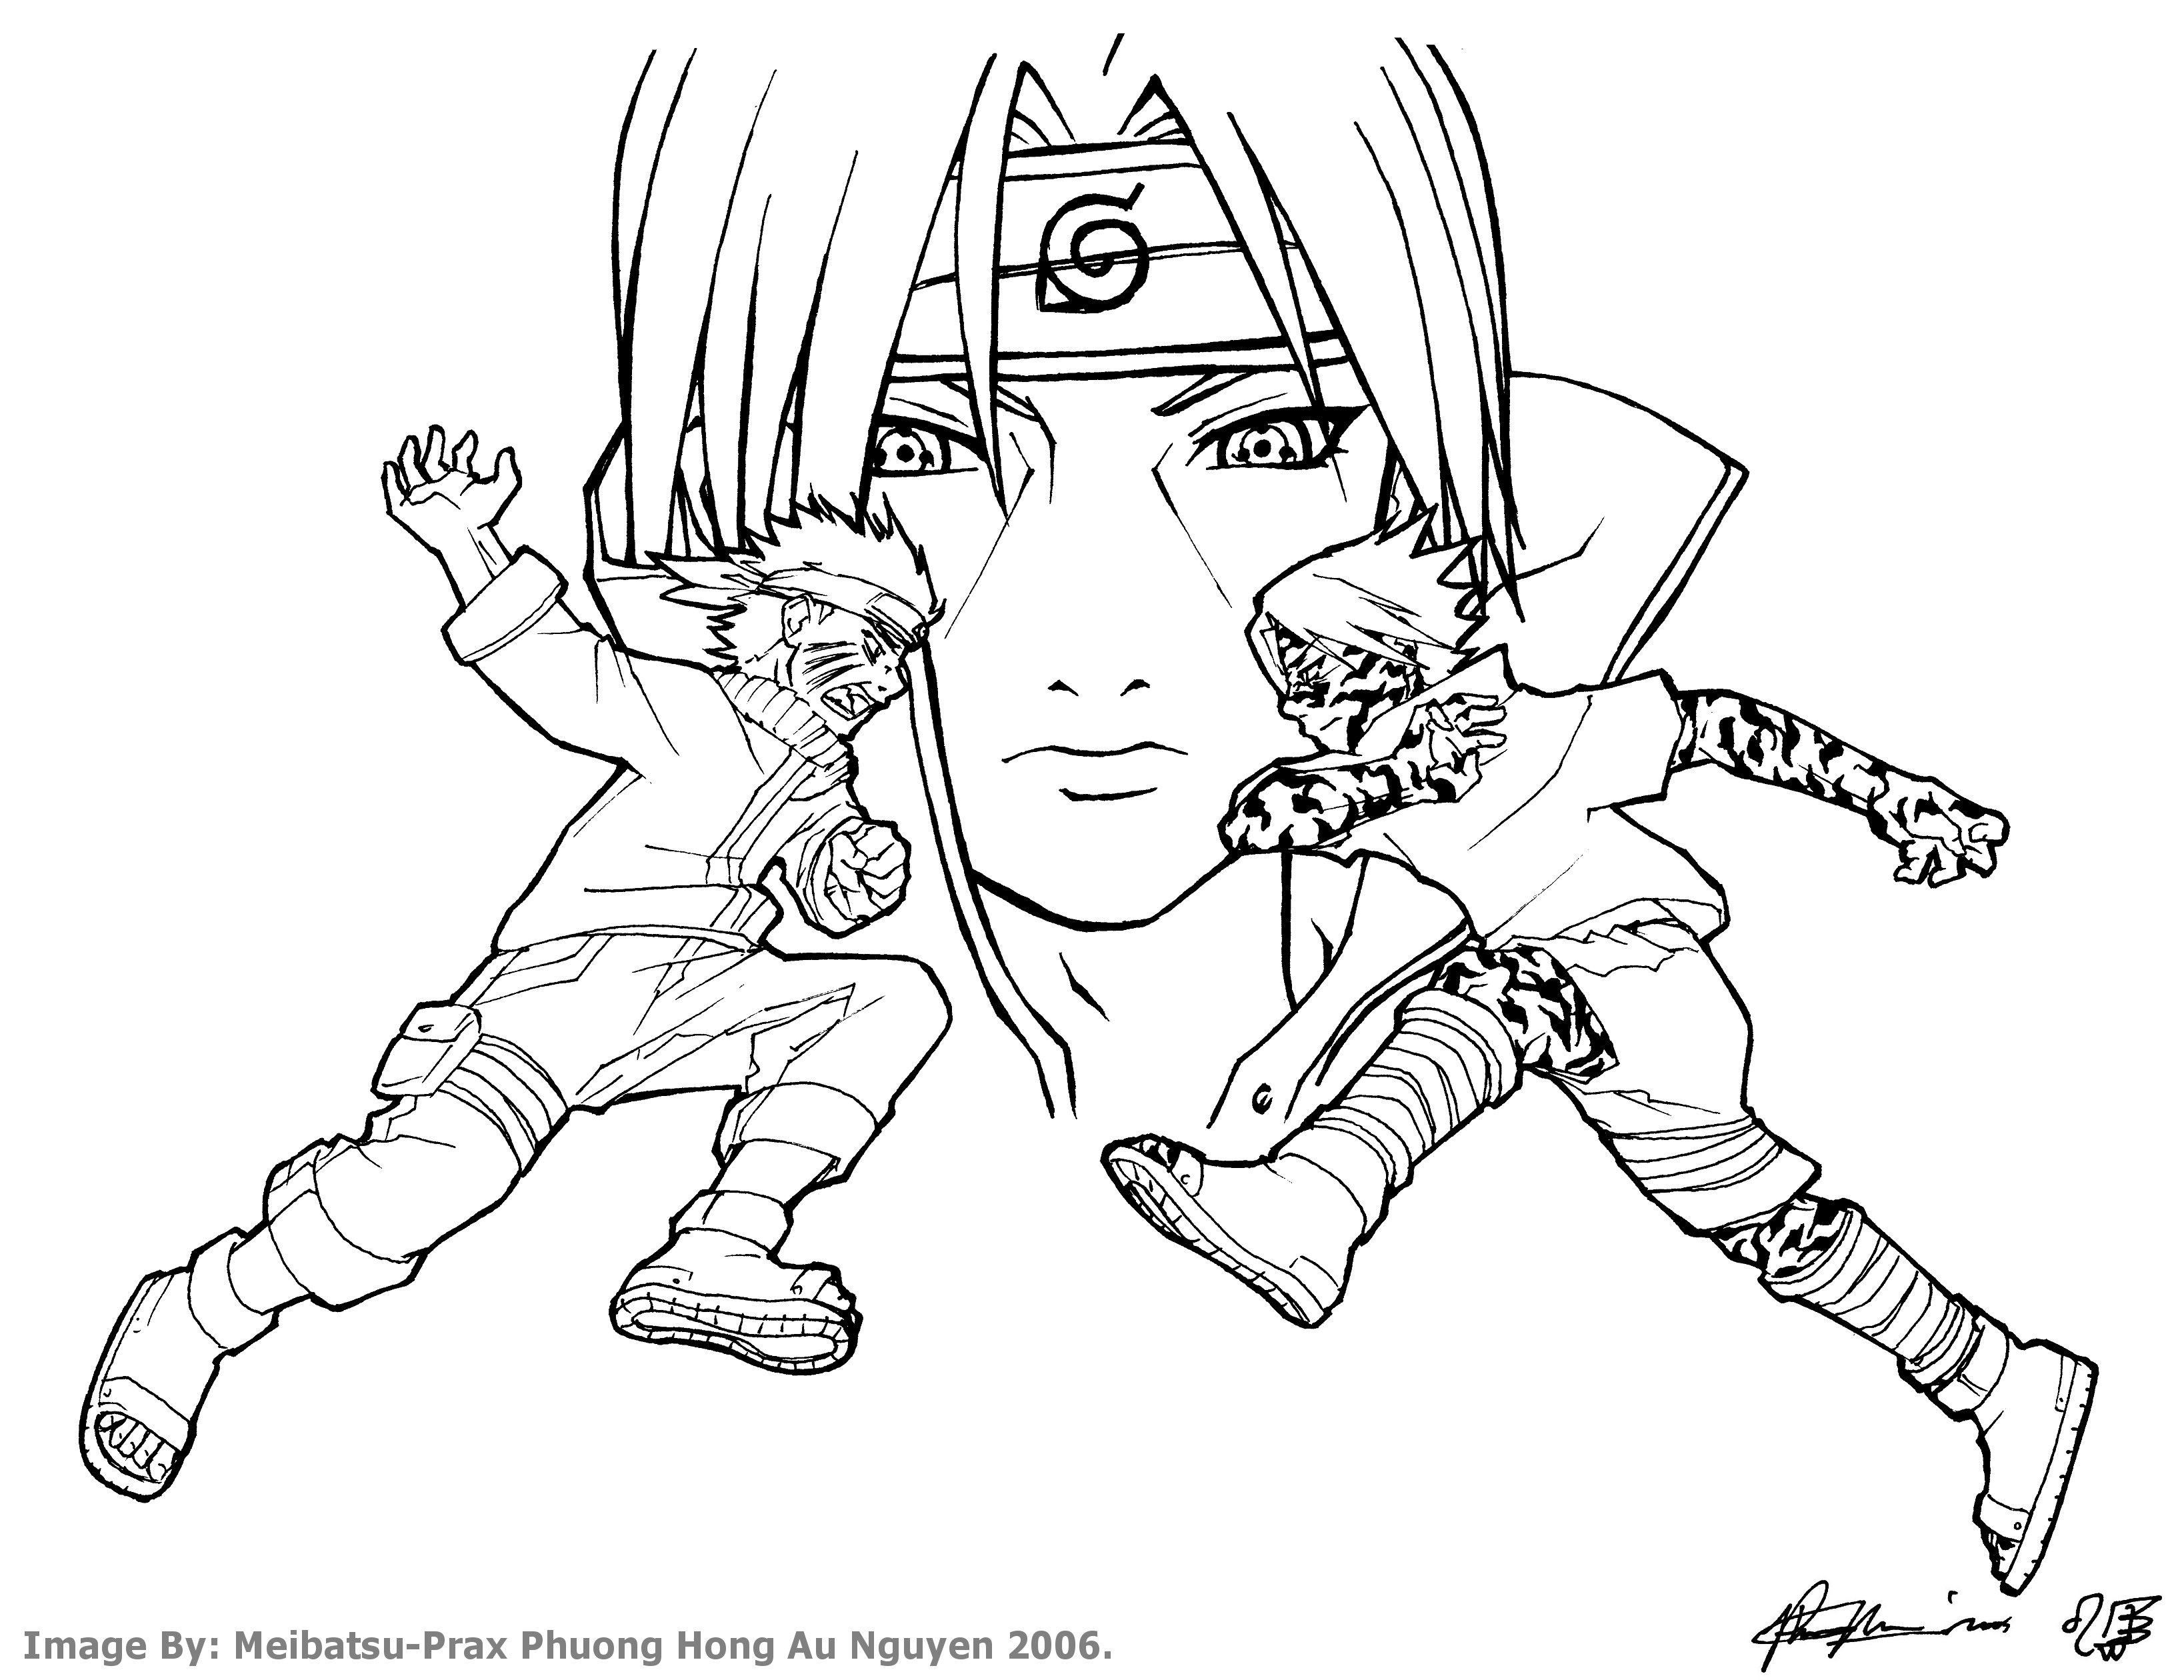 naruto vs sasuke w itachi bg by meibatsu on deviantart